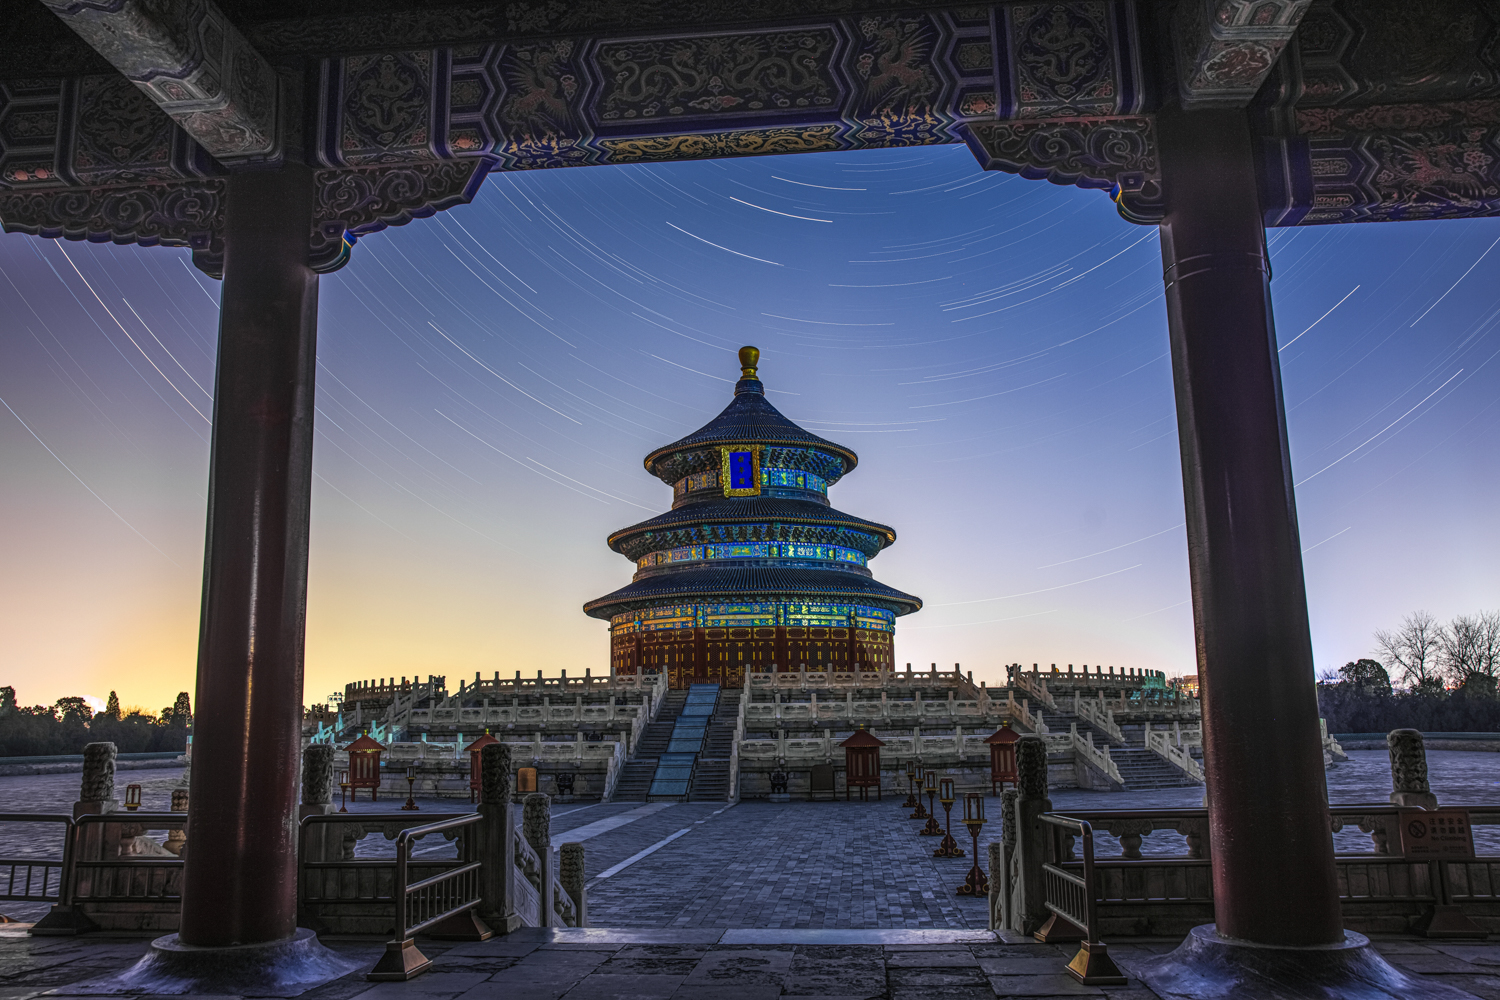 Temple of Heaven in 600 years